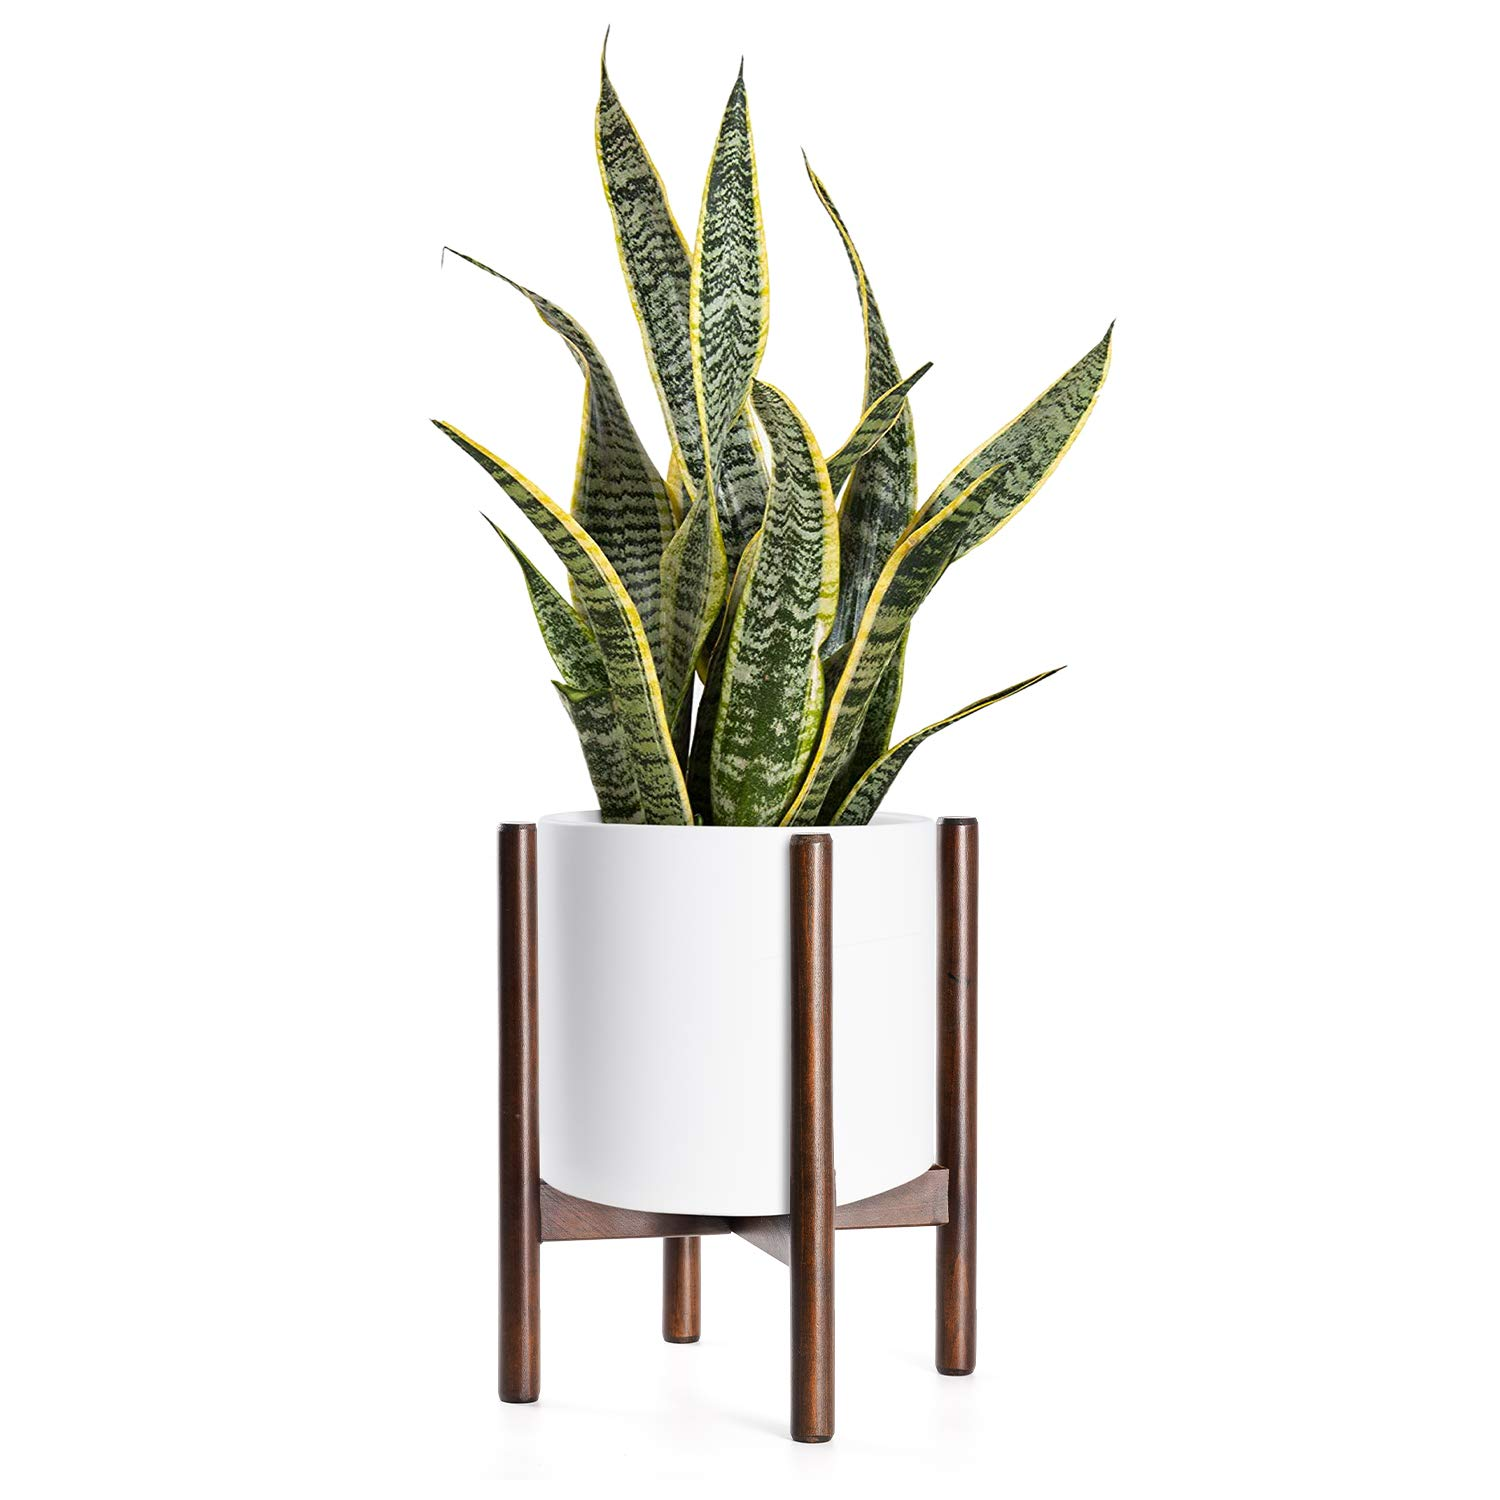 Mid Century Plant Stand - Up to 10'' Flower Pot, Wood Indoor Planter Holder, Modern Home Decor (Planter Not Included) by TIMEYARD